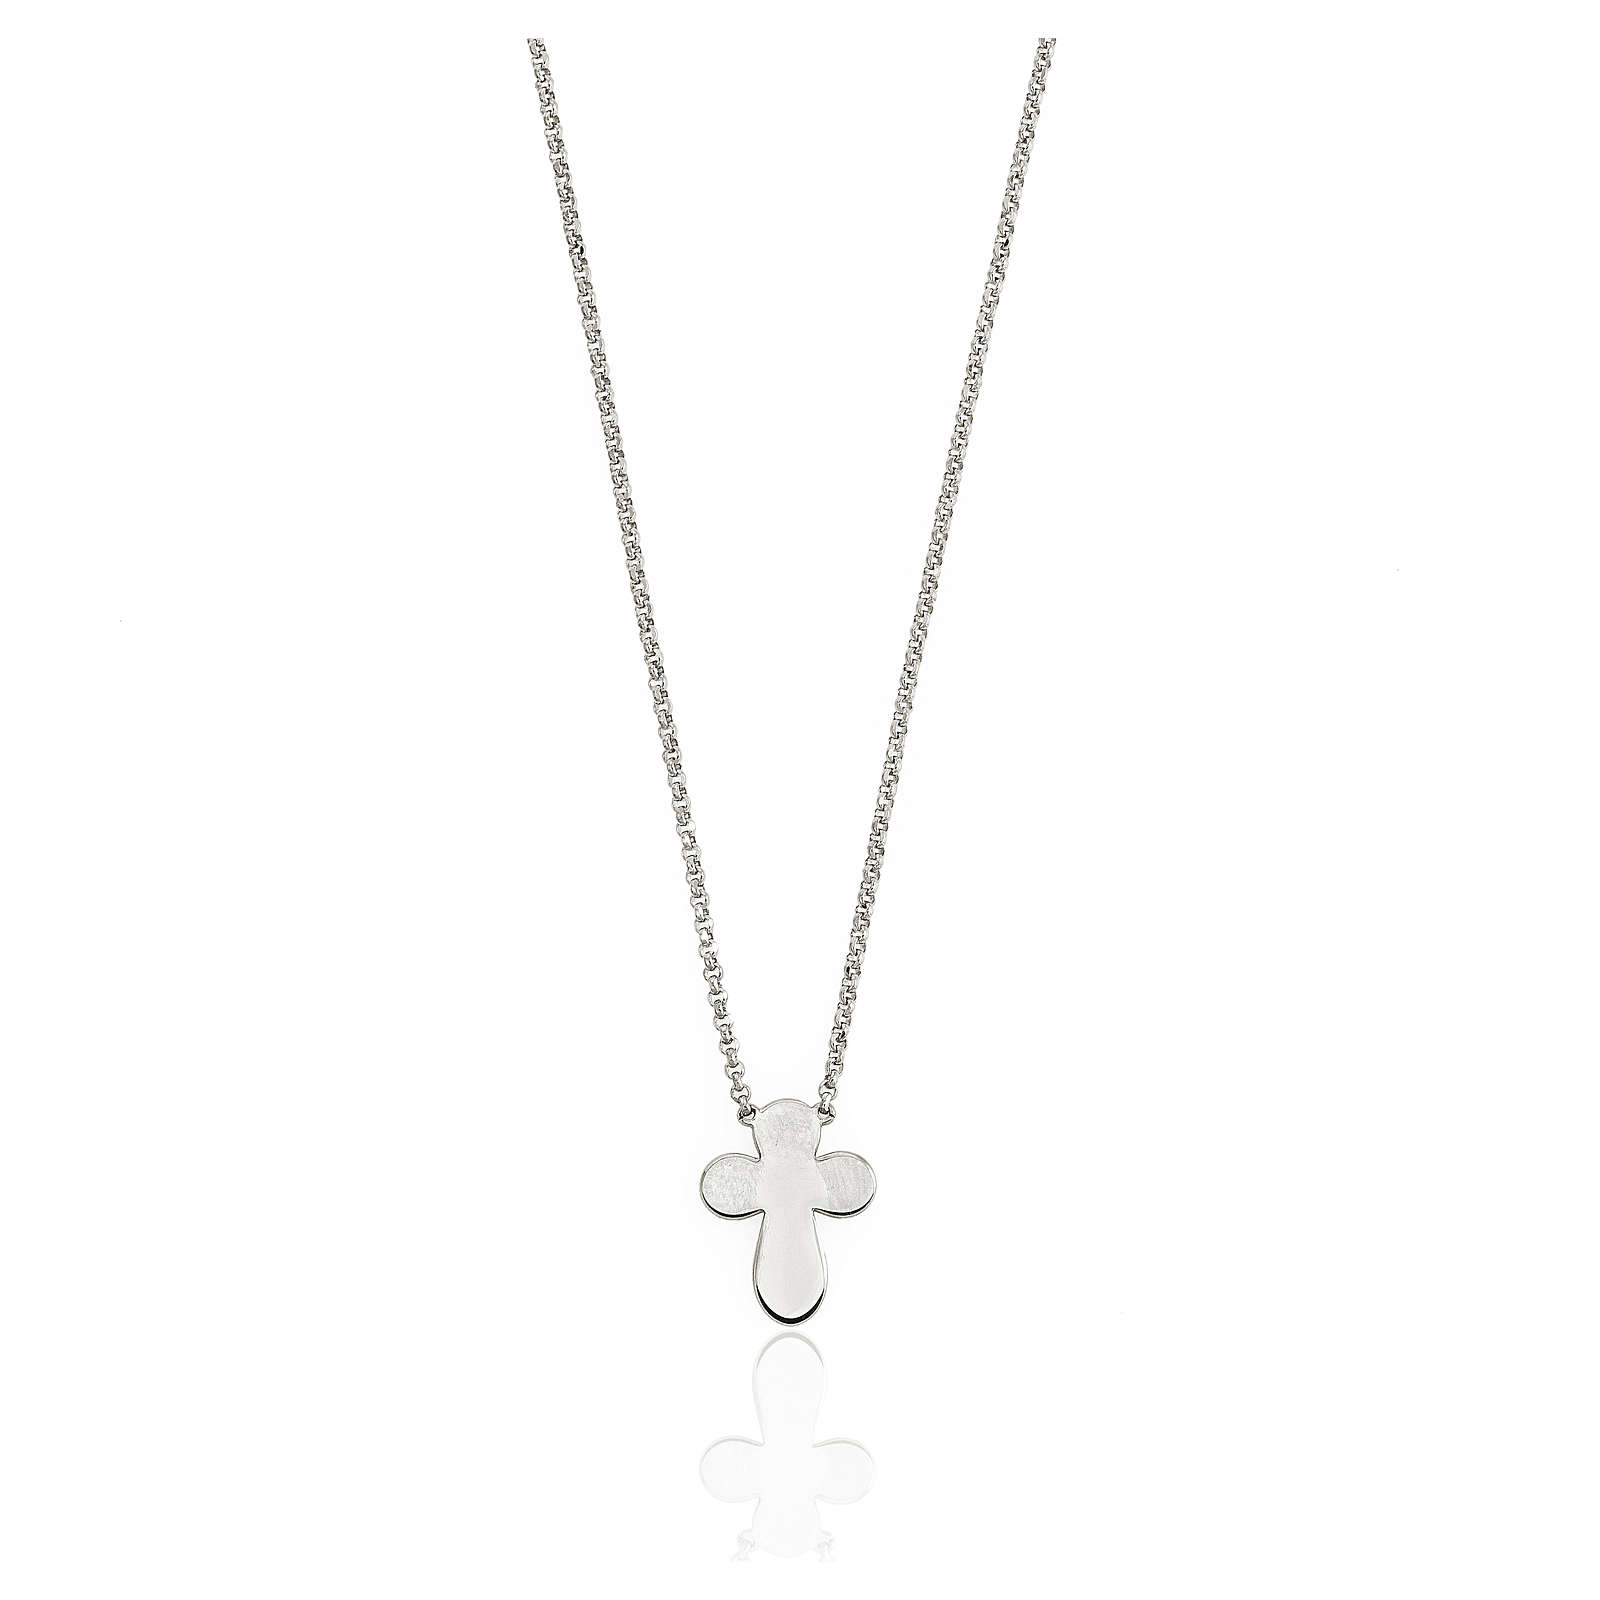 AMEN Necklace rounded Cross silver 925 Rhodium finish 4